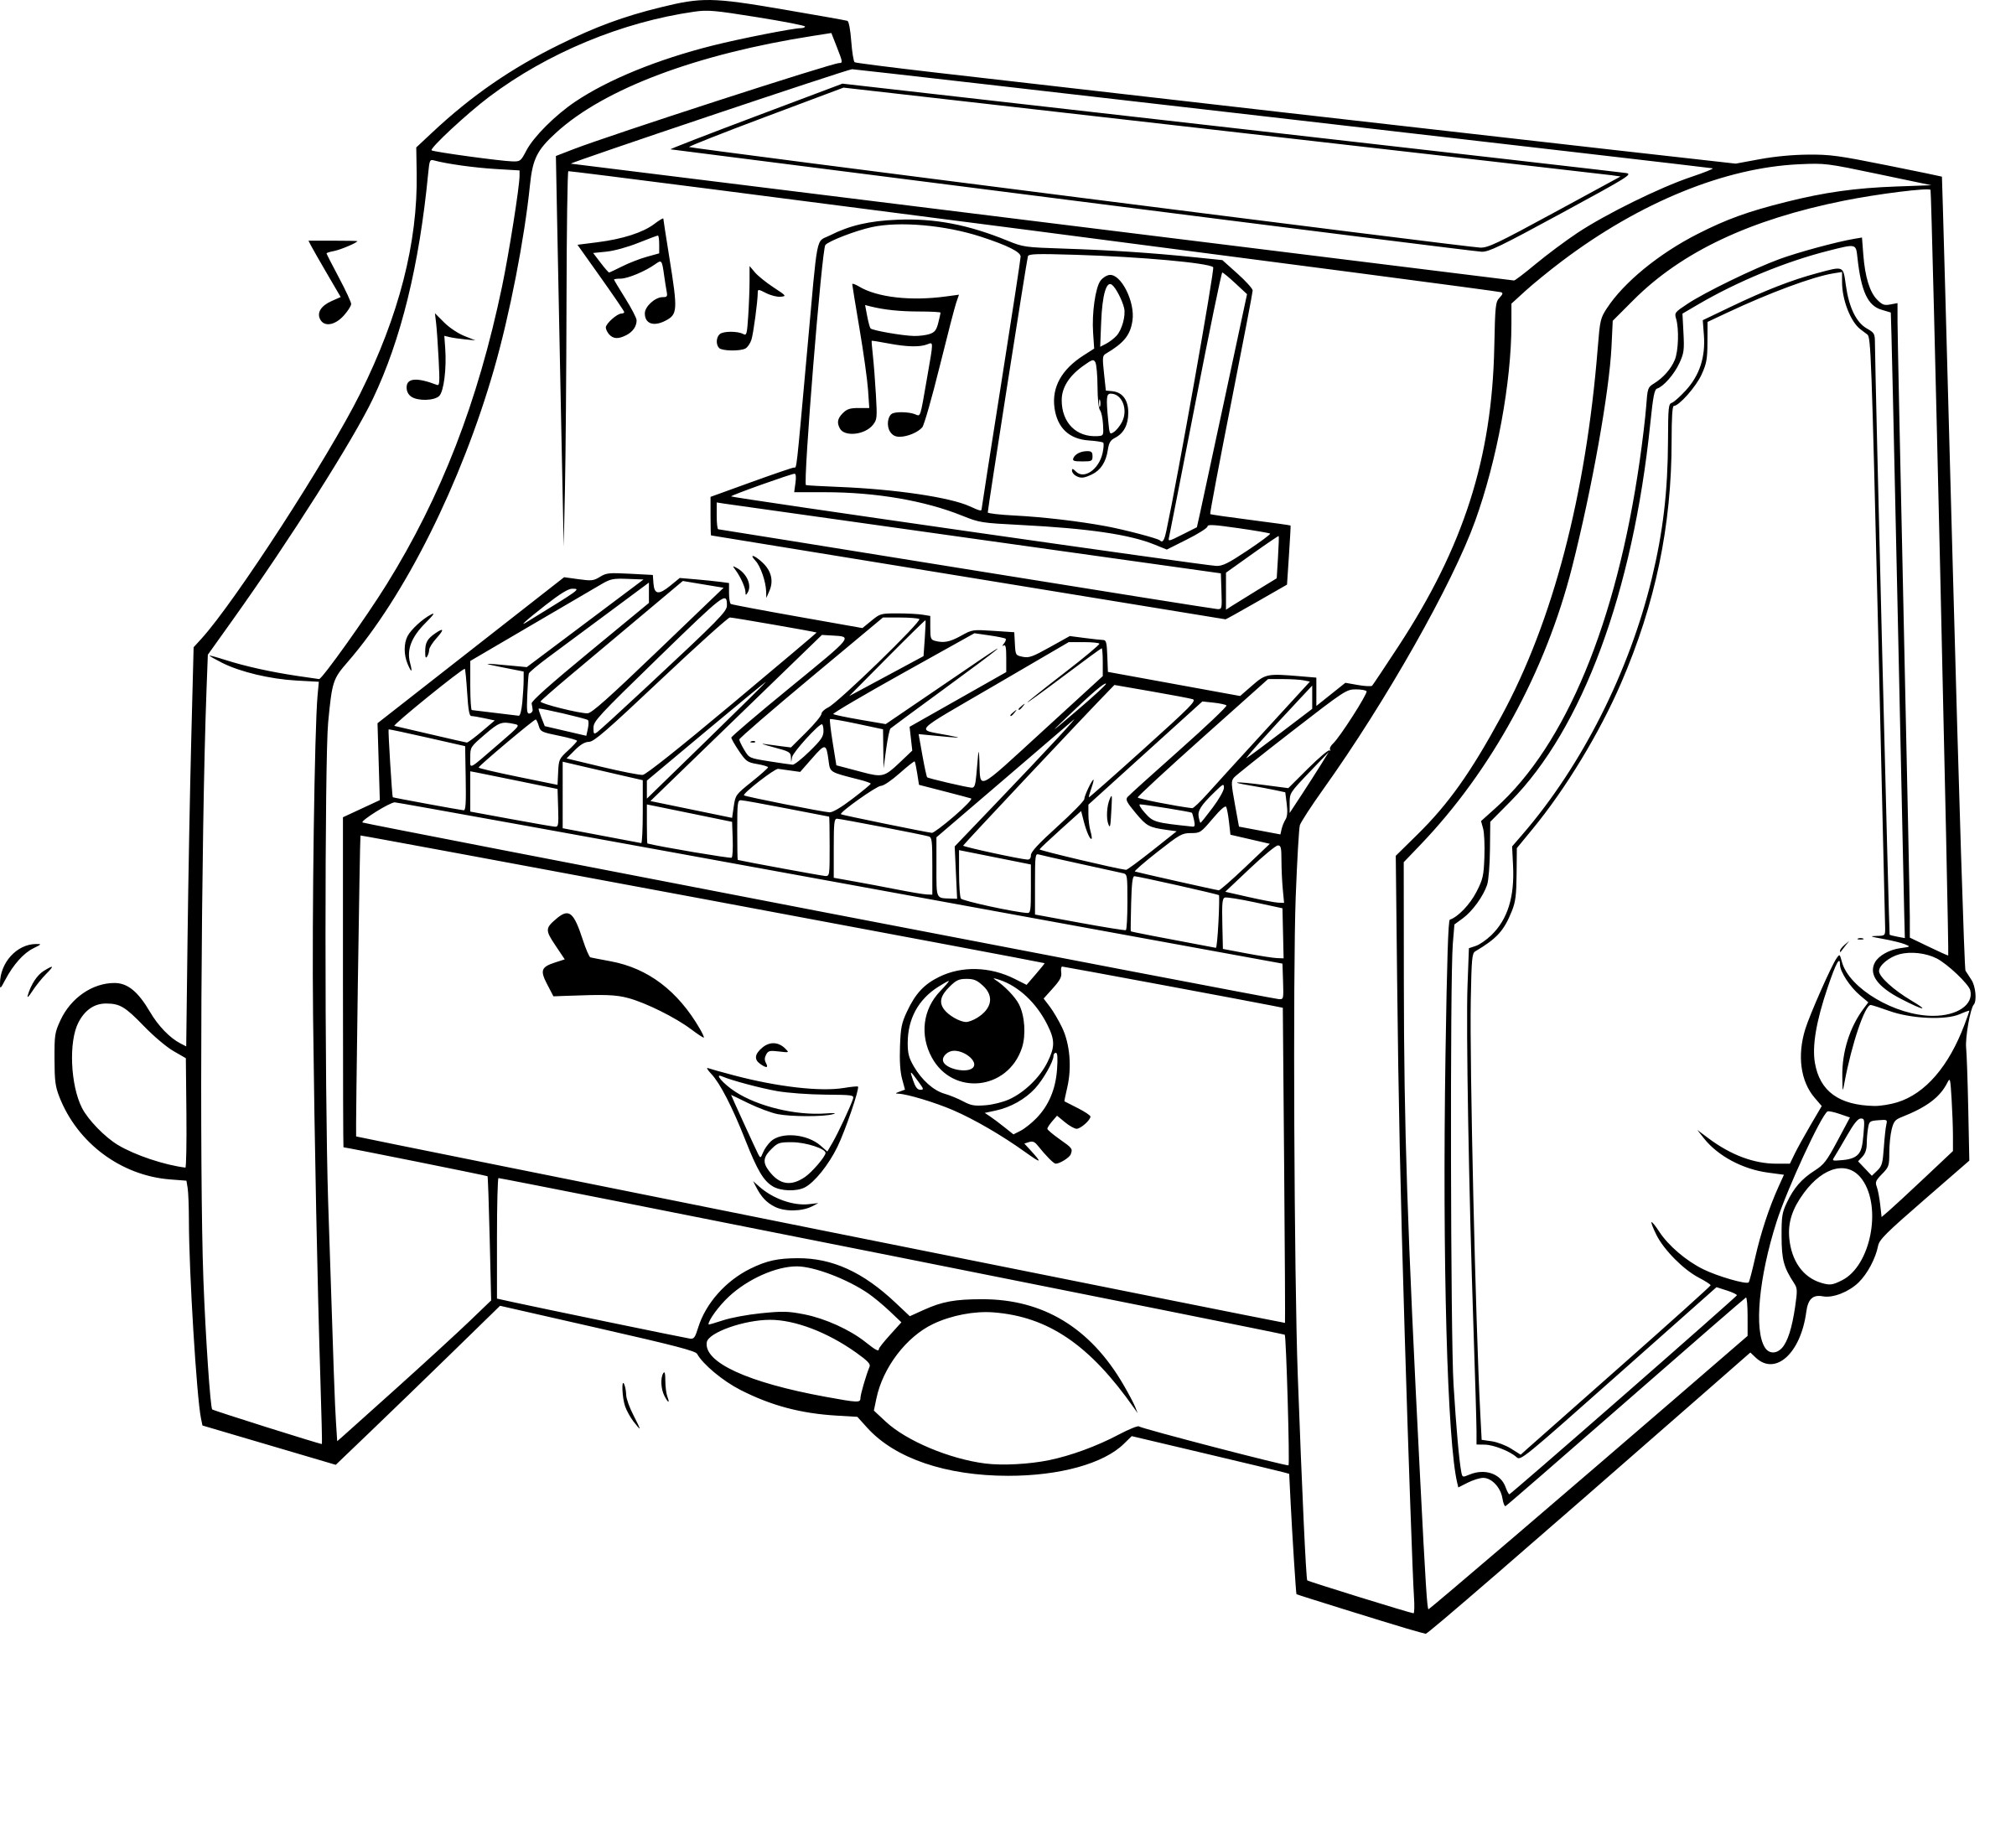 Coloriage shopkins piano imprimer gratuit - Coloriage piano ...